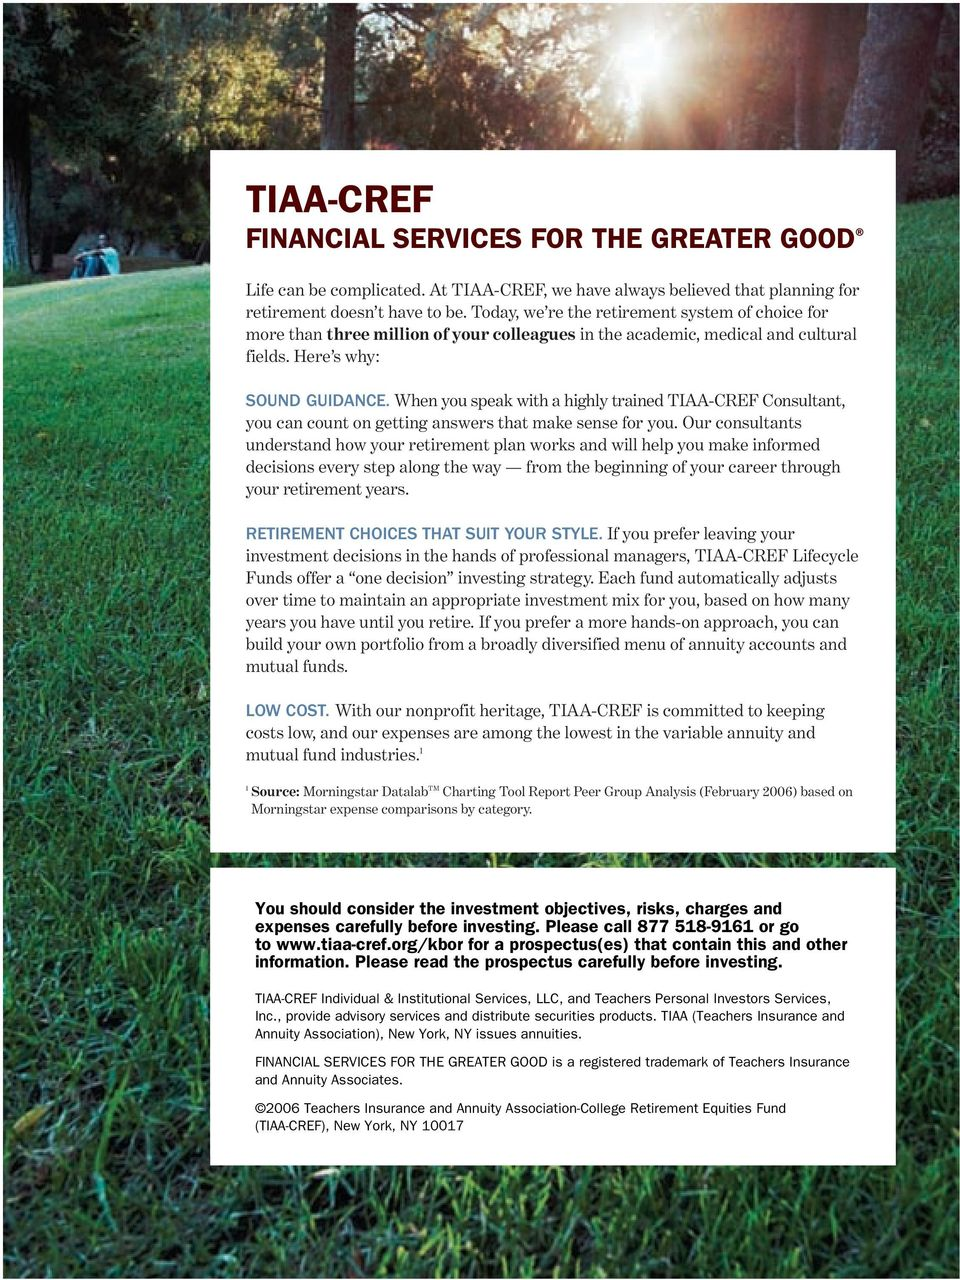 When you speak with a highly trained TIAA-CREF Consultant, you can count on getting answers that make sense for you.